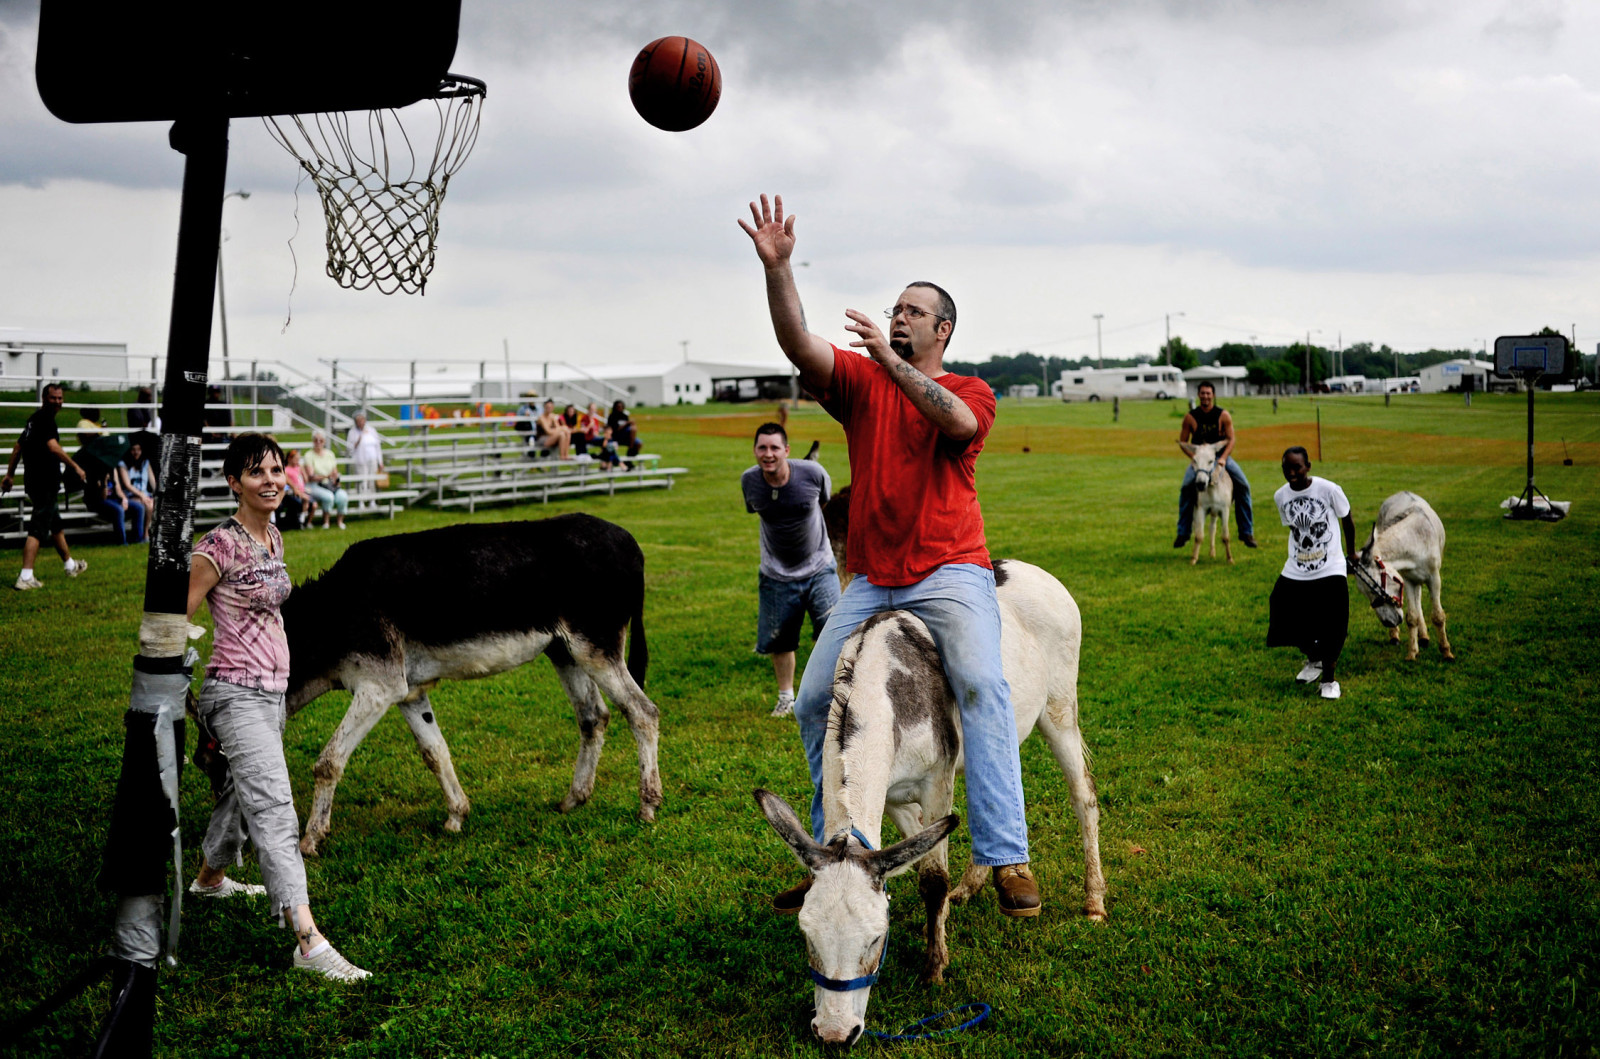 City councilwoman Laura Nauser, left, watches teammate Eddie Murray make a basket during a donkey basketball game. The fundraising event at the Boone County Fairgrounds benefitting the  Columbia-based youth literacy and education organization Destiny of H.O.P.E.